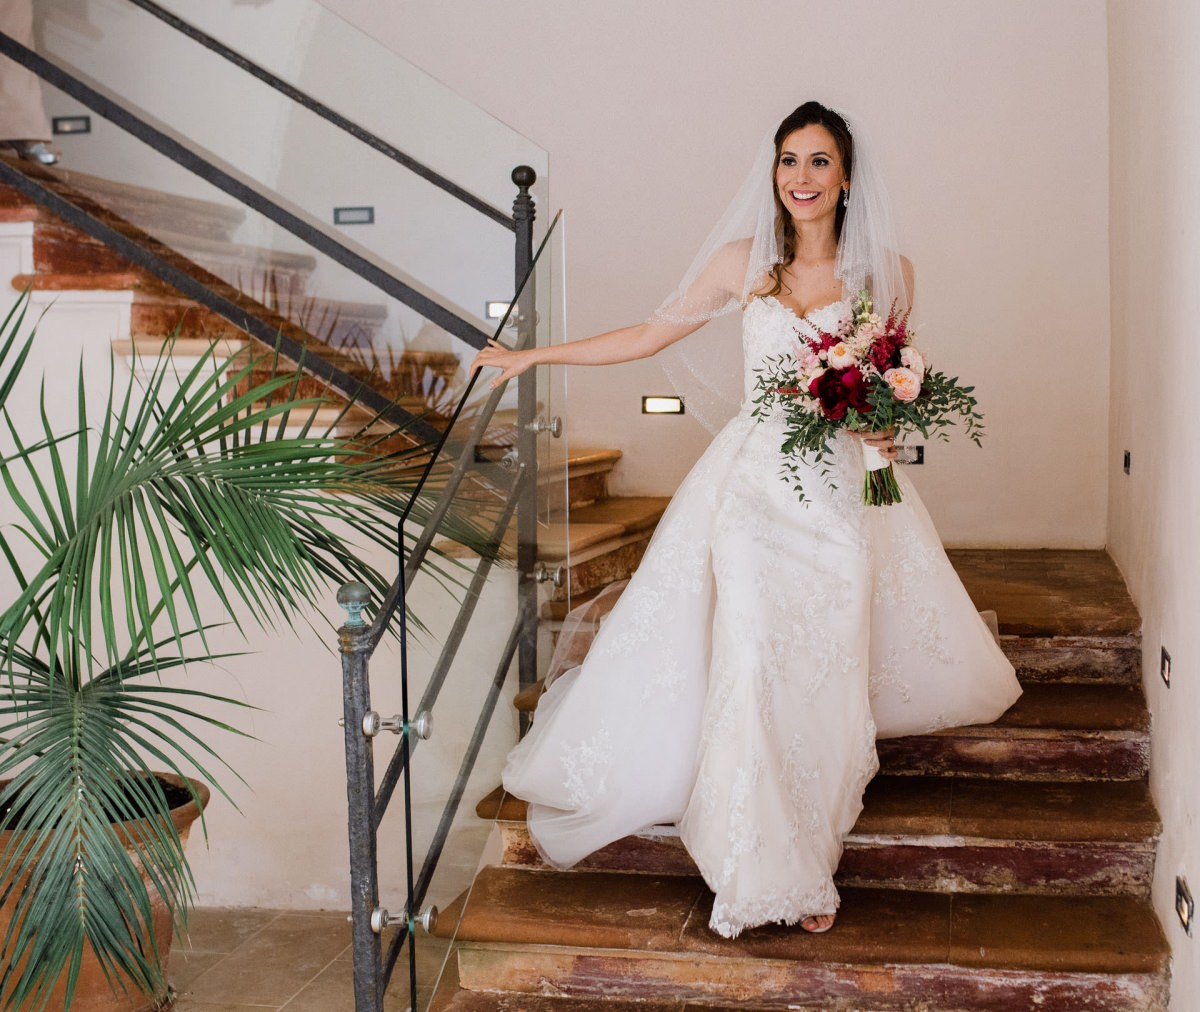 miguel arranz wedding photography vanesa y alex 082